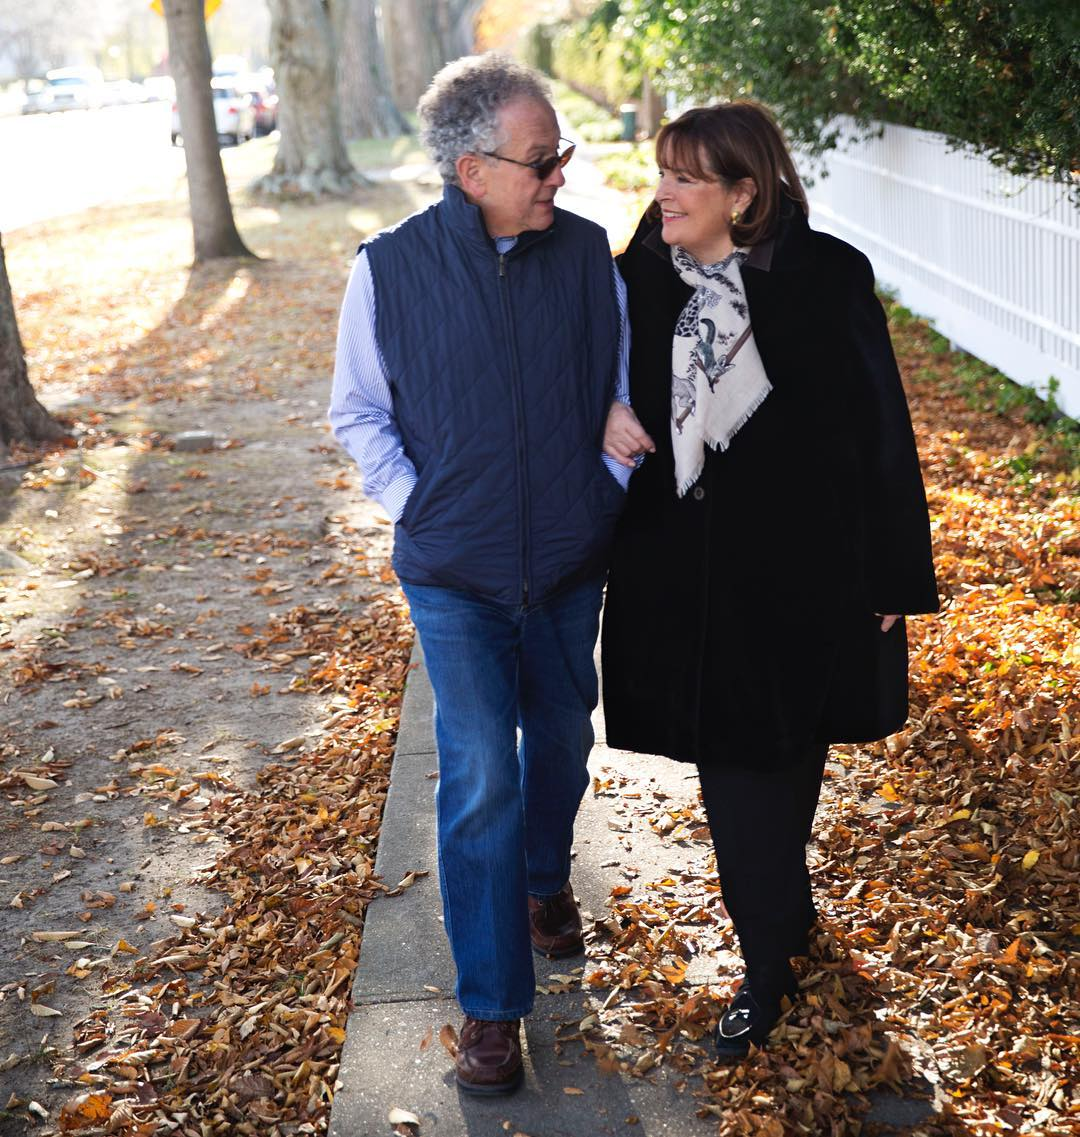 Ina Garten Photos ina garten & jeffrey garten's love story - how the barefoot